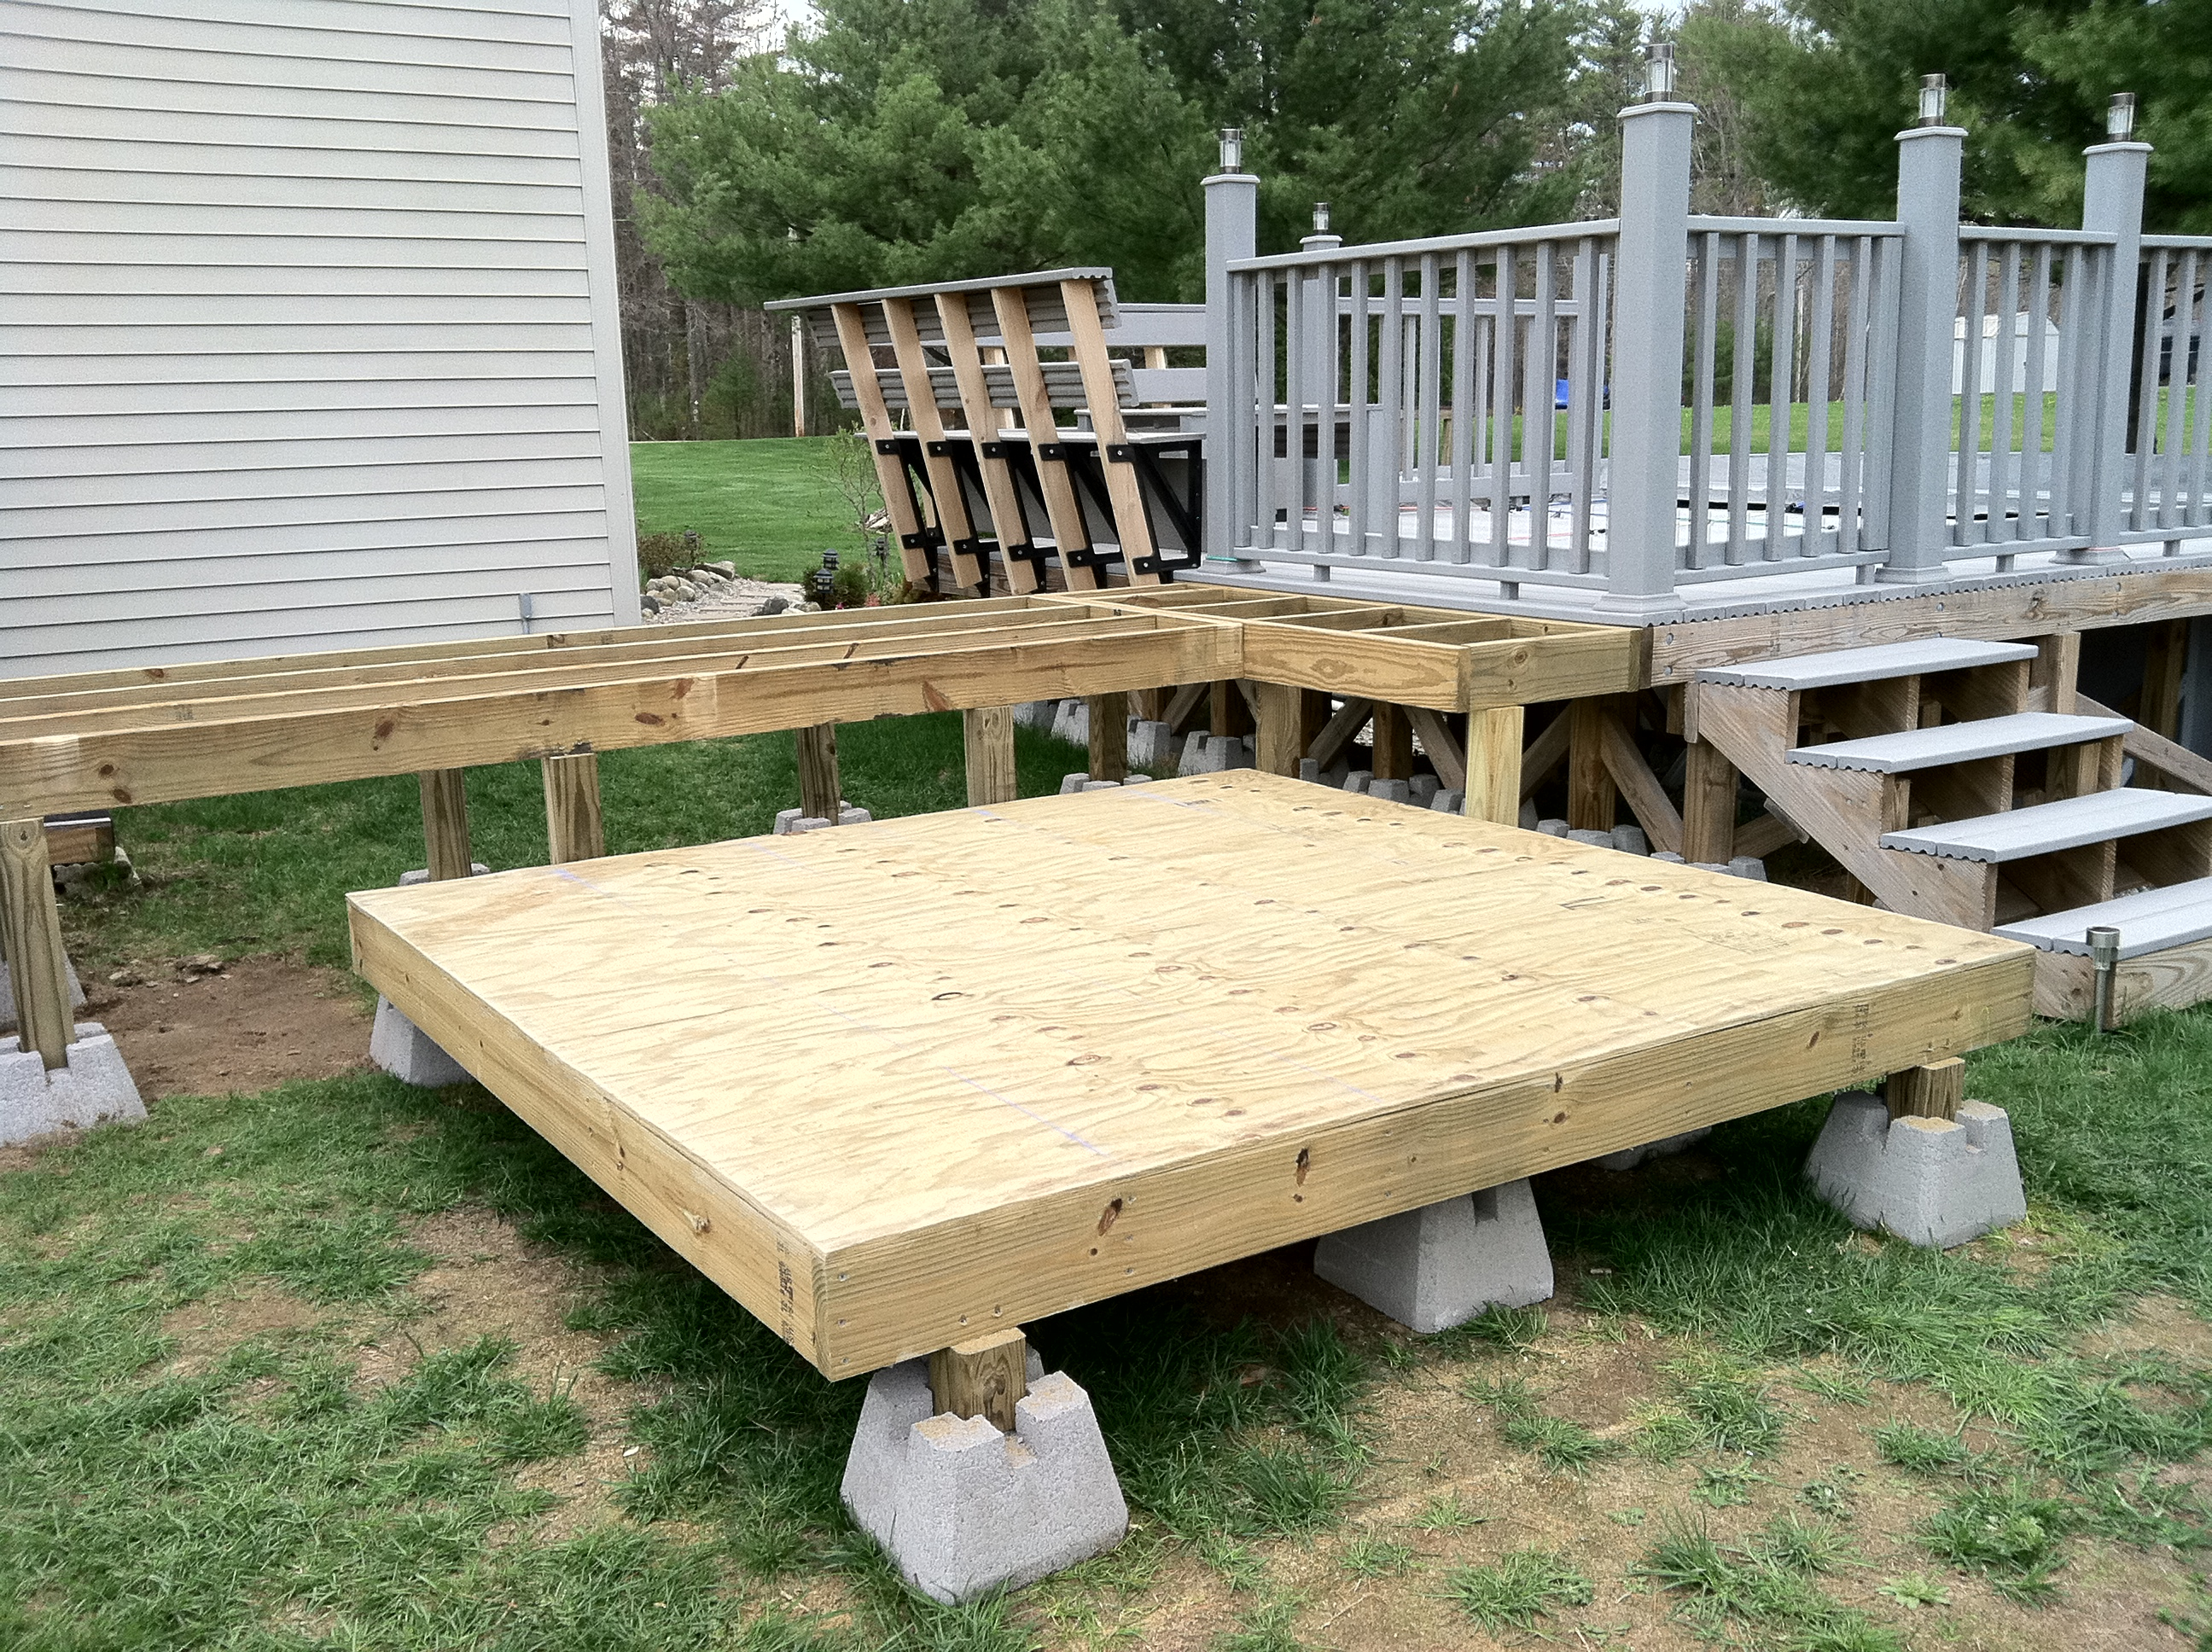 Hot Tub Walls And Walkway Supports Repair And Refinishing A Hot Tub inside proportions 2592 X 1936